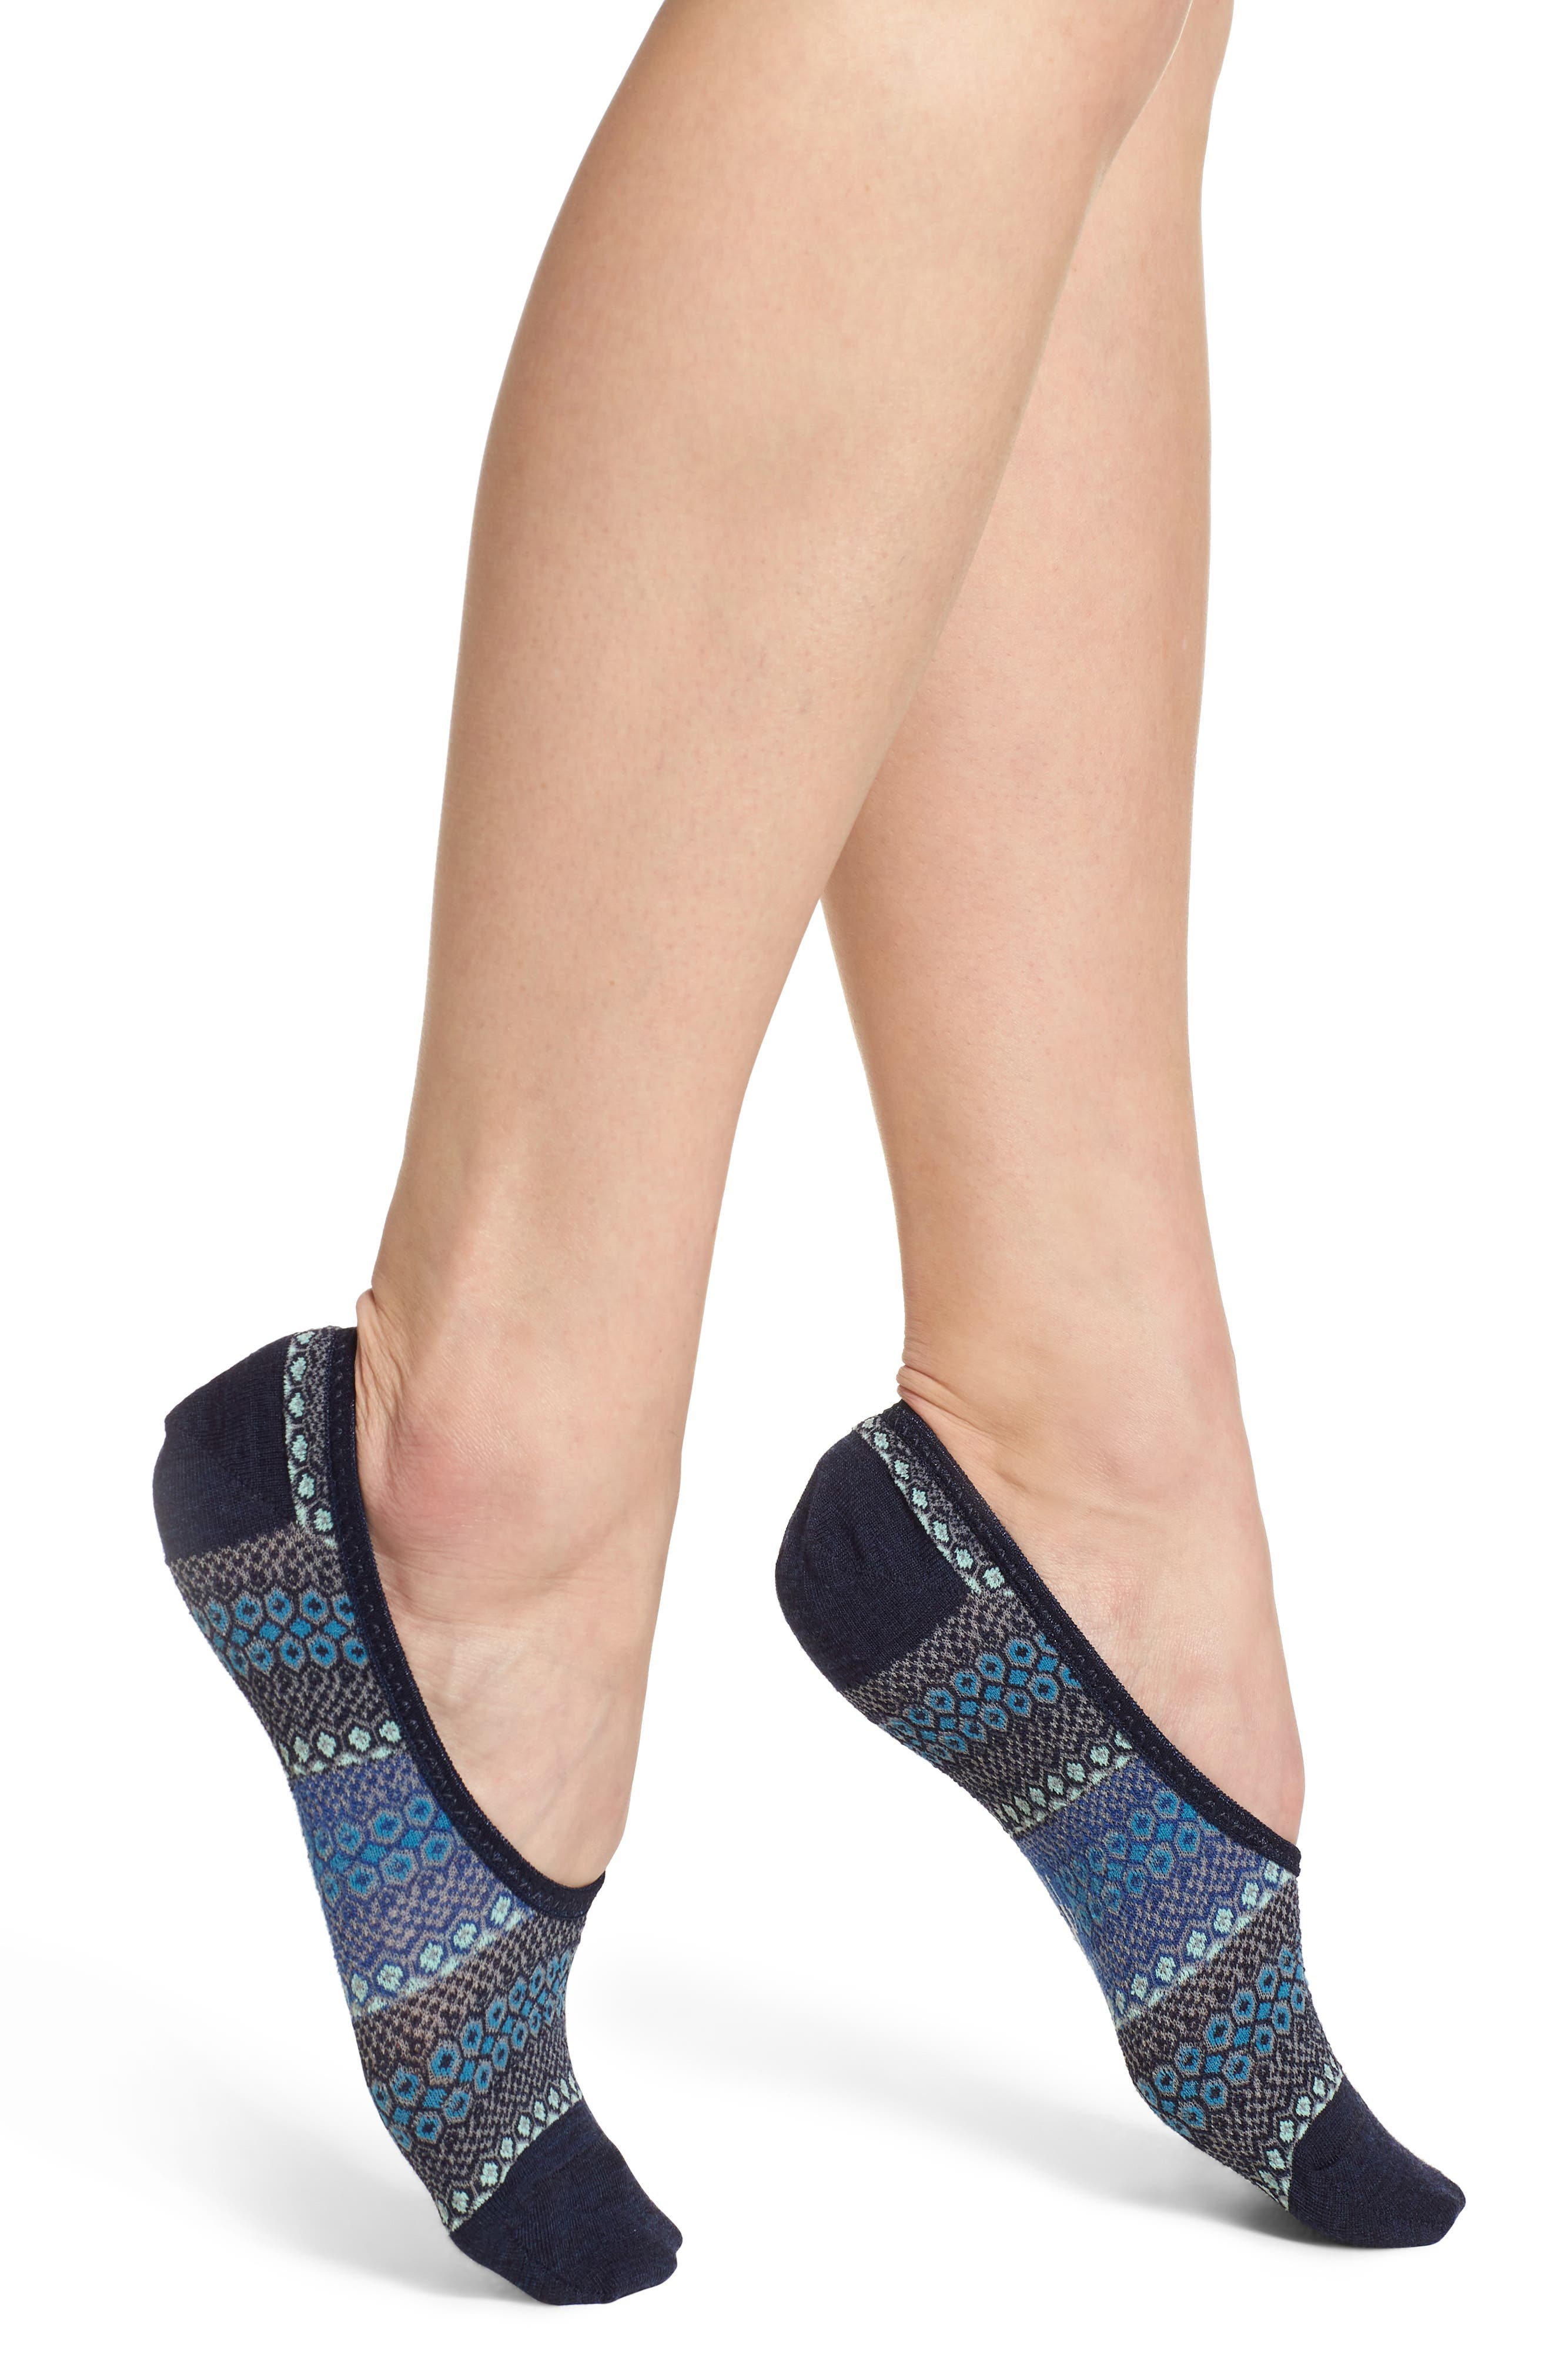 Beyond The Hive Hide & Seek No-Show Socks,                         Main,                         color,